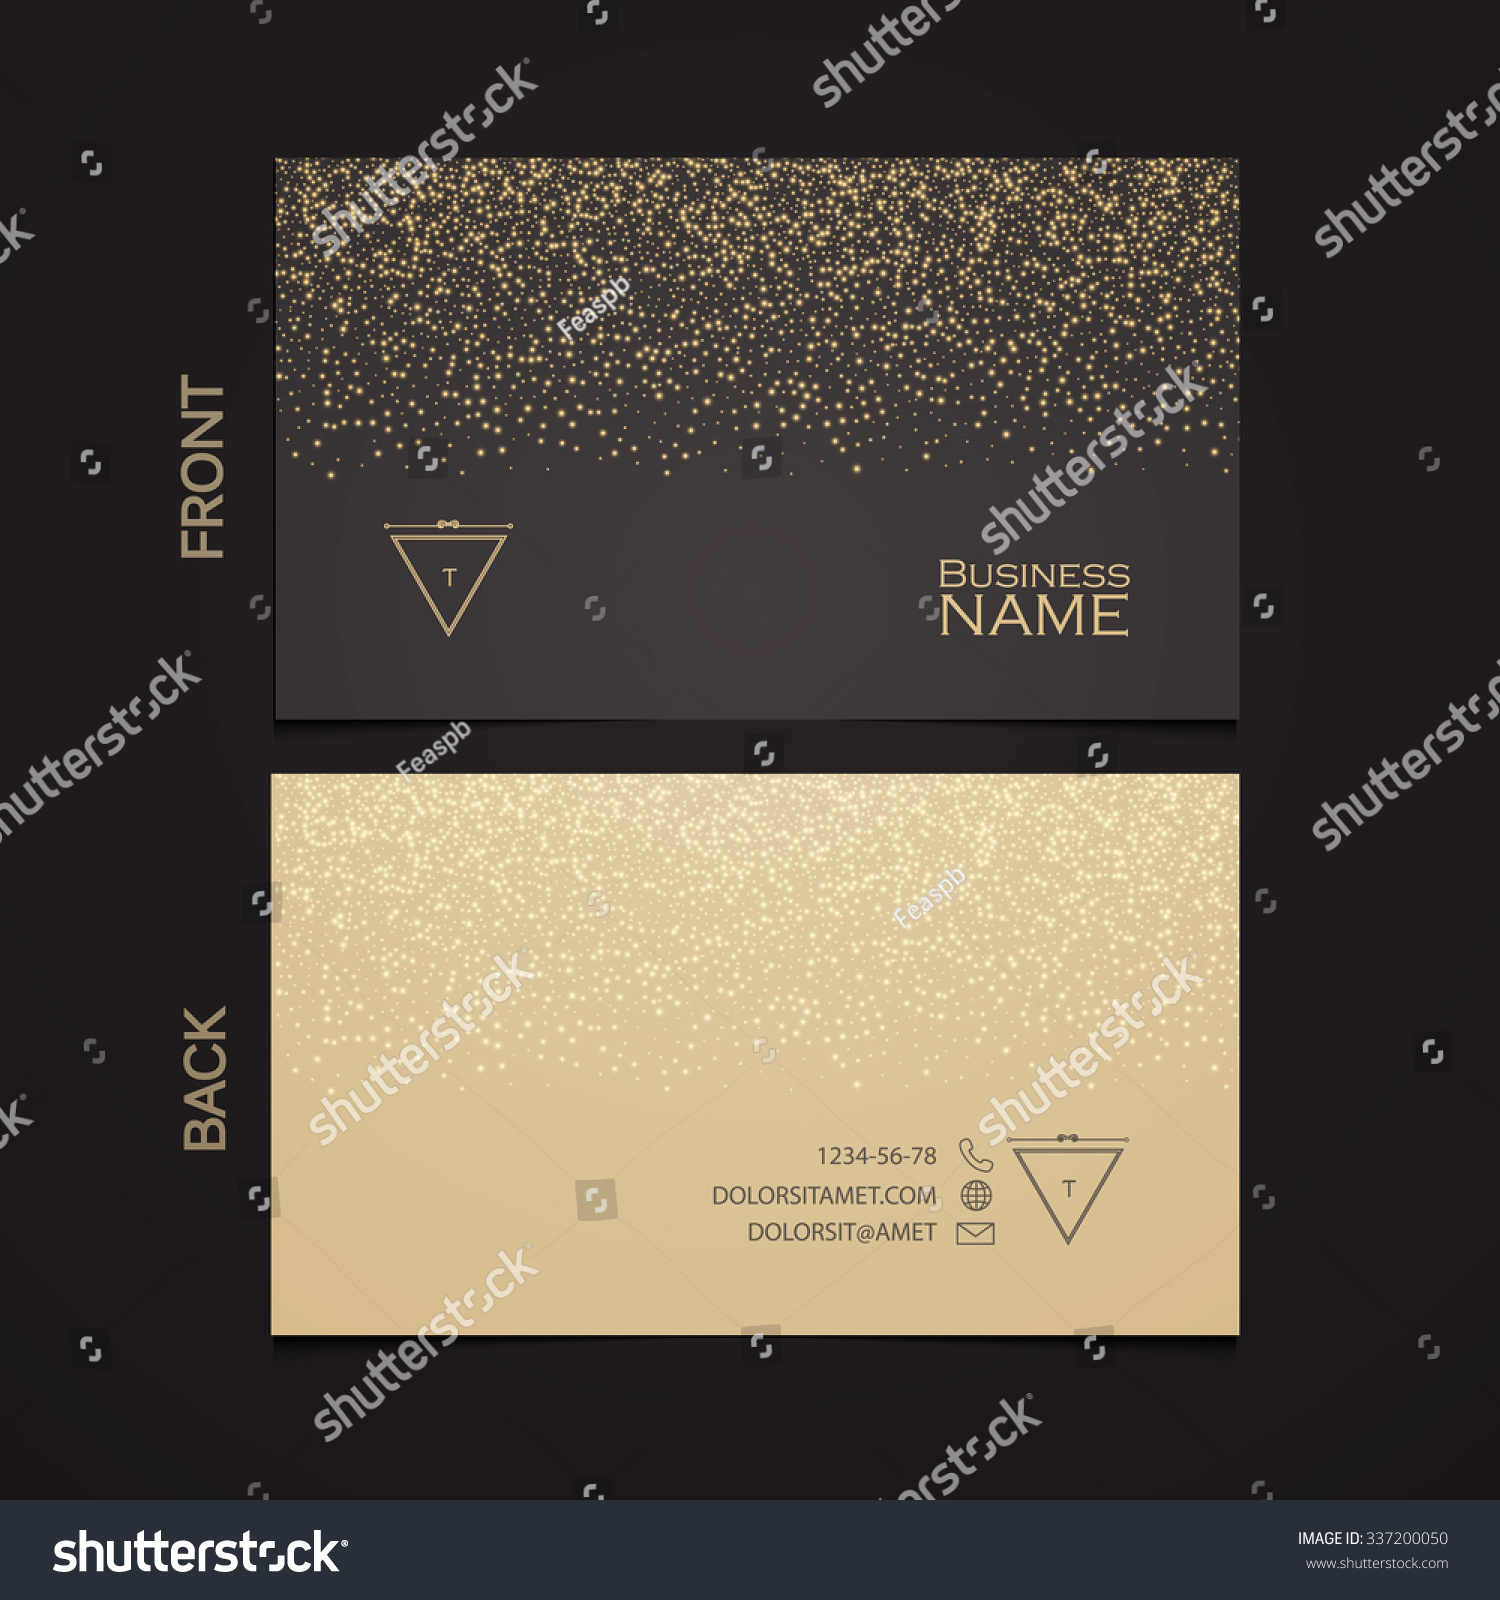 Elegant template luxury business card gold stock vector 337200050 elegant template luxury business card with gold dust place for text particles background reheart Gallery